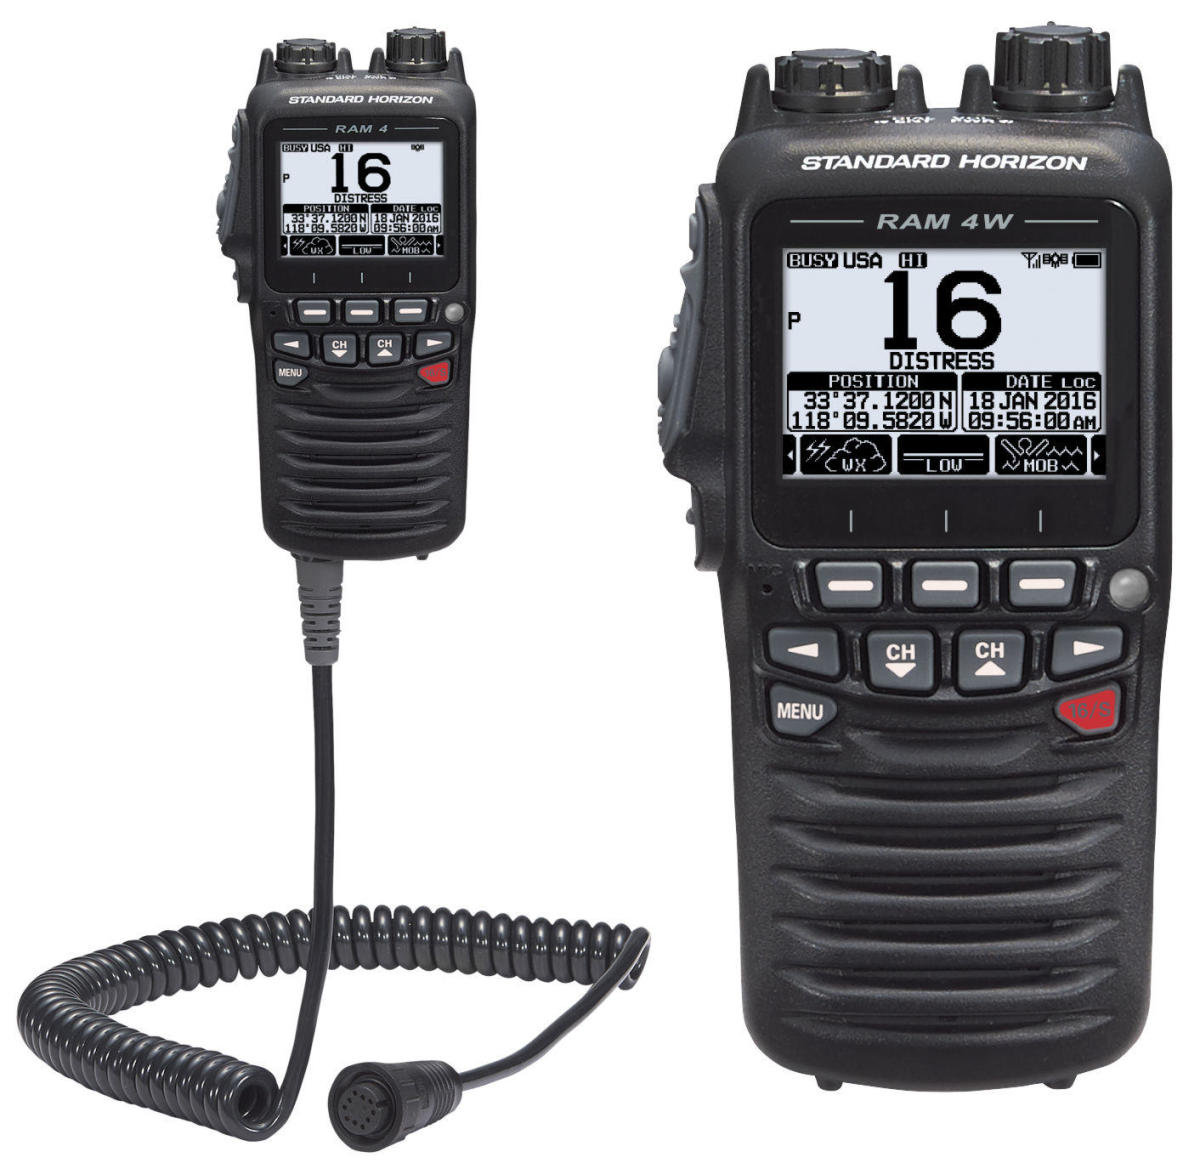 Standard Horizon GX6500: a loaded VHF radio also integrated